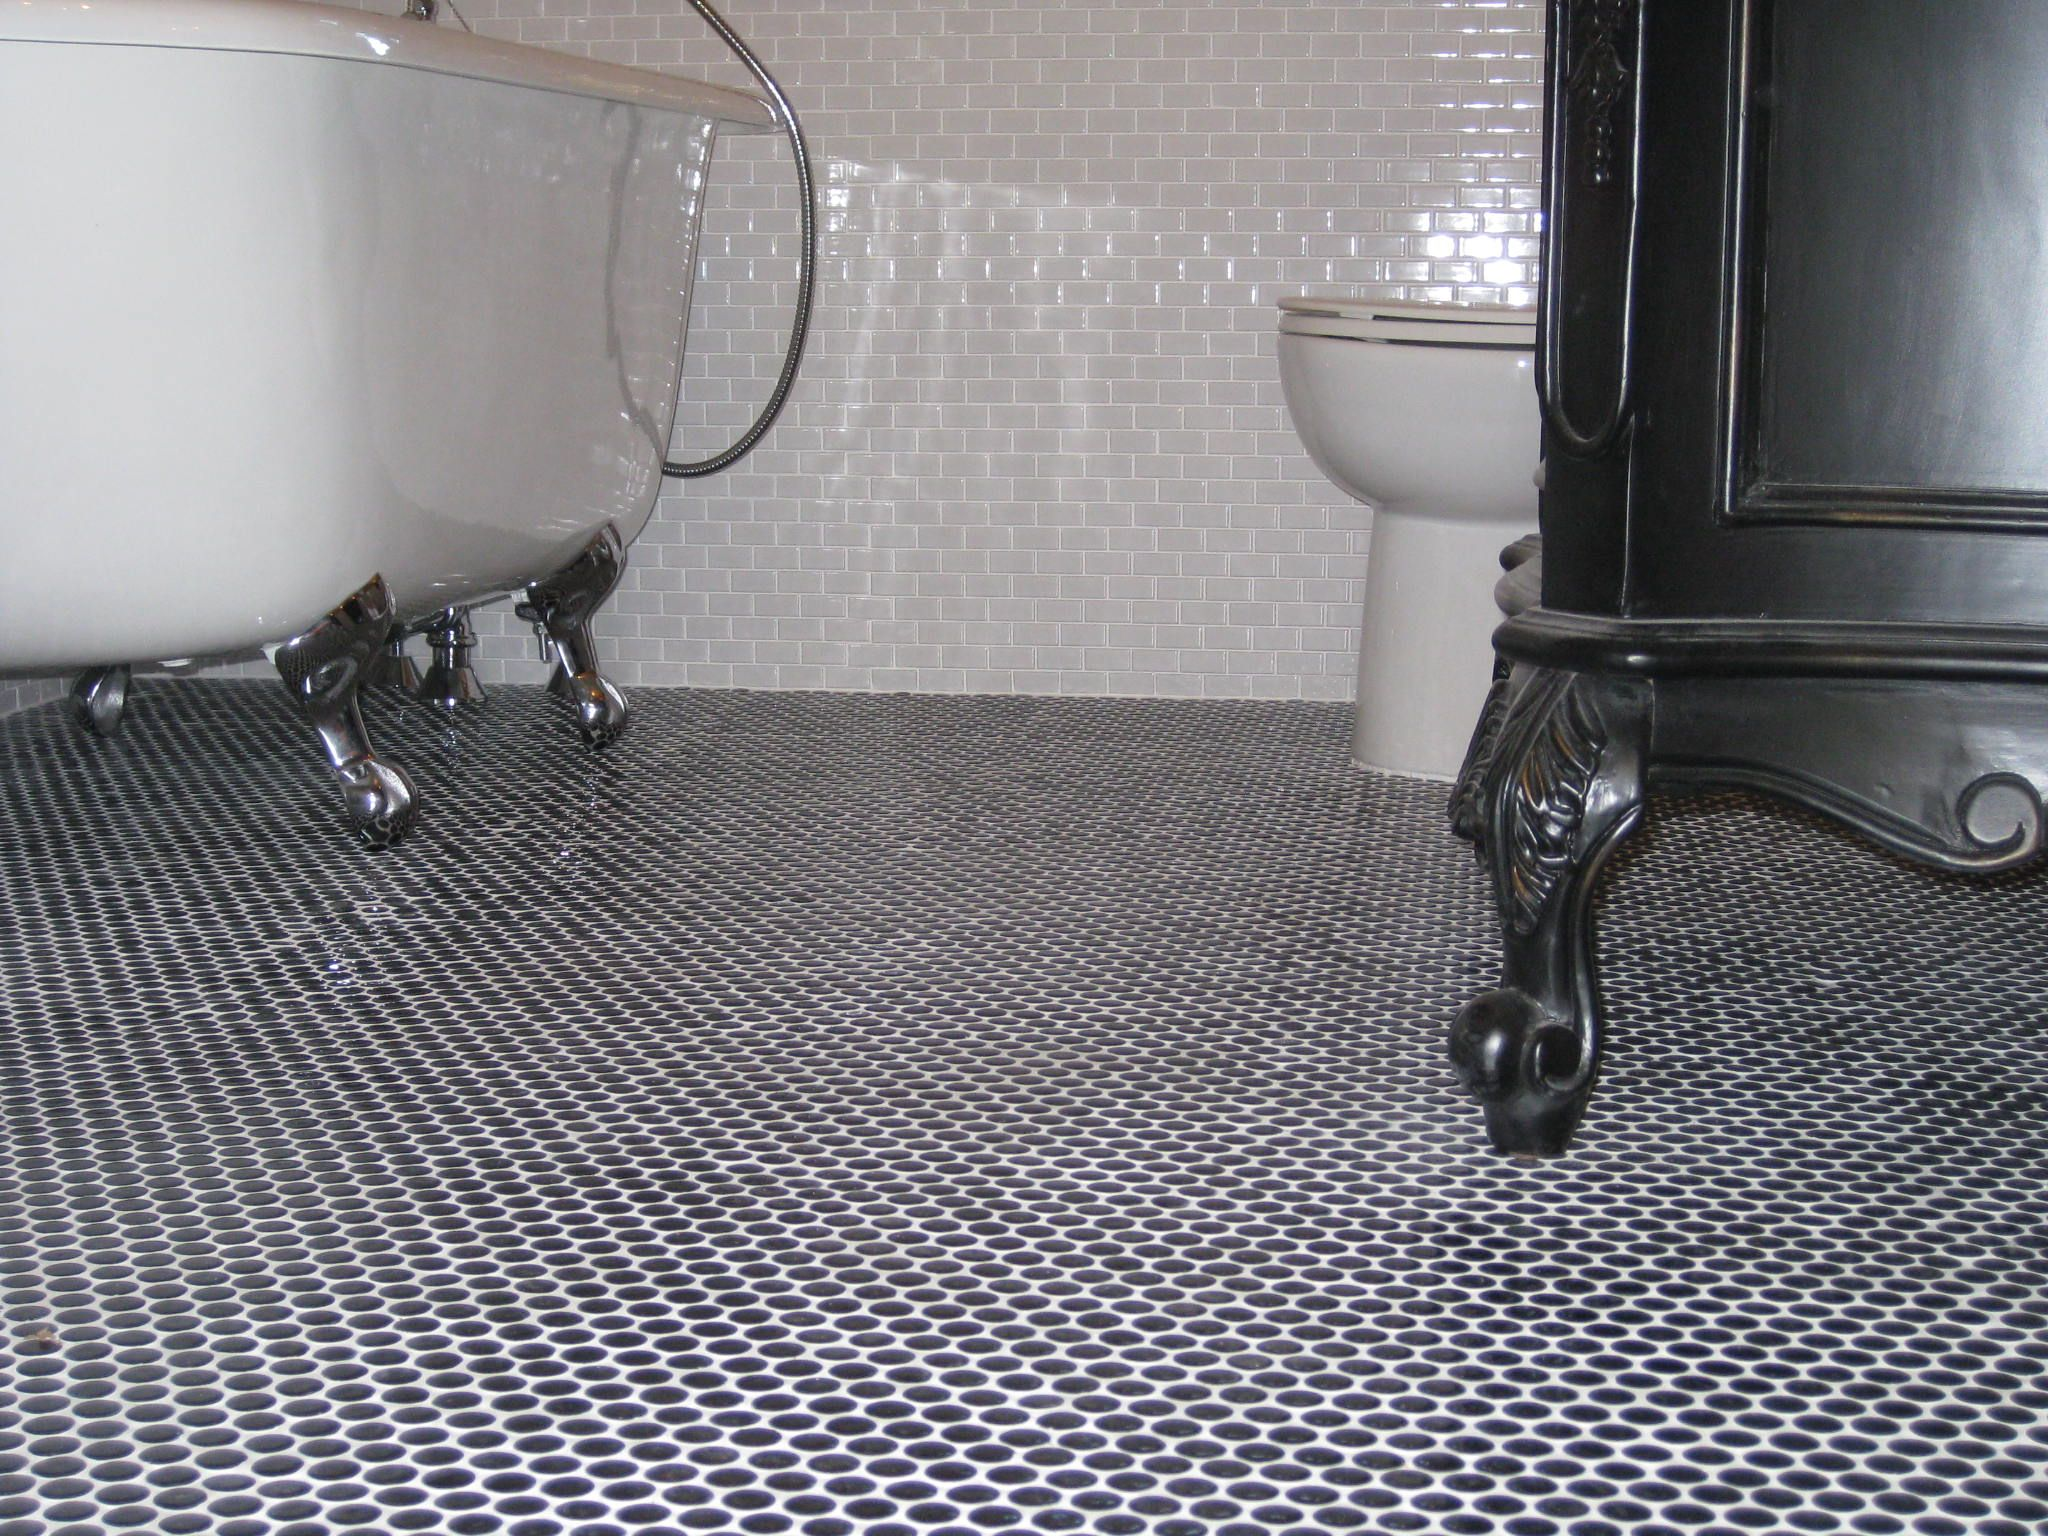 Clawfoot Tub Black Penny Round Tile Floor And Black Belle Foret